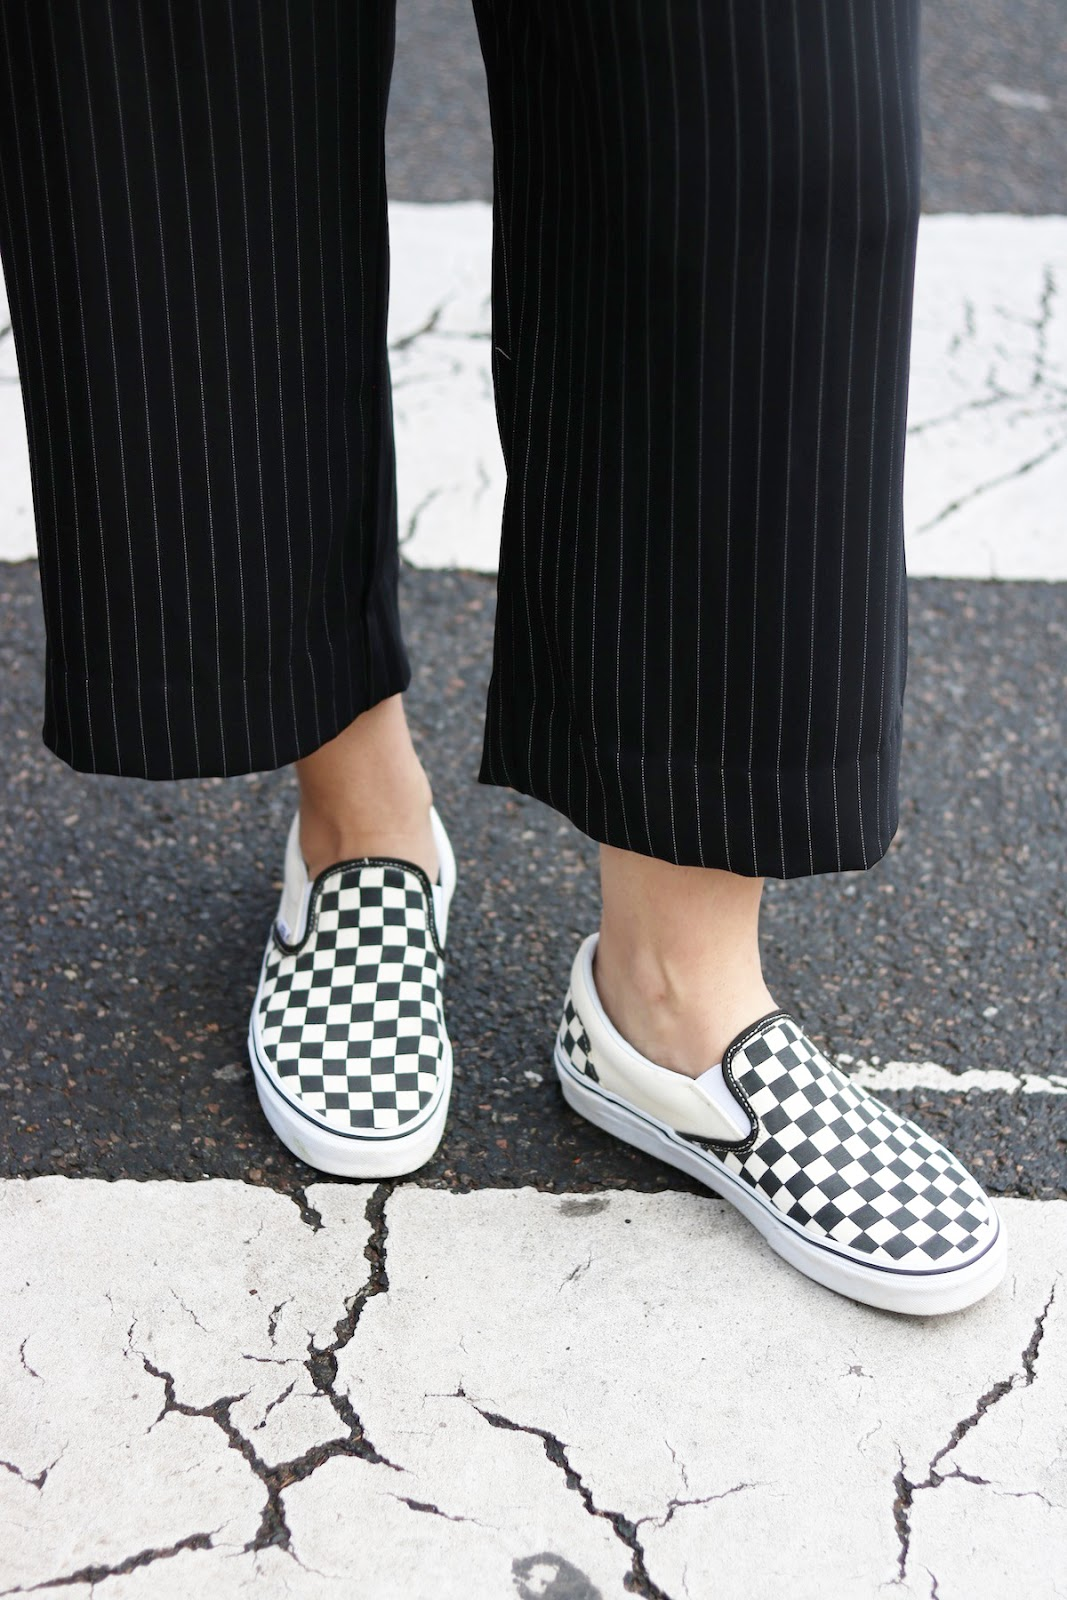 vans checkered slip ons outfit